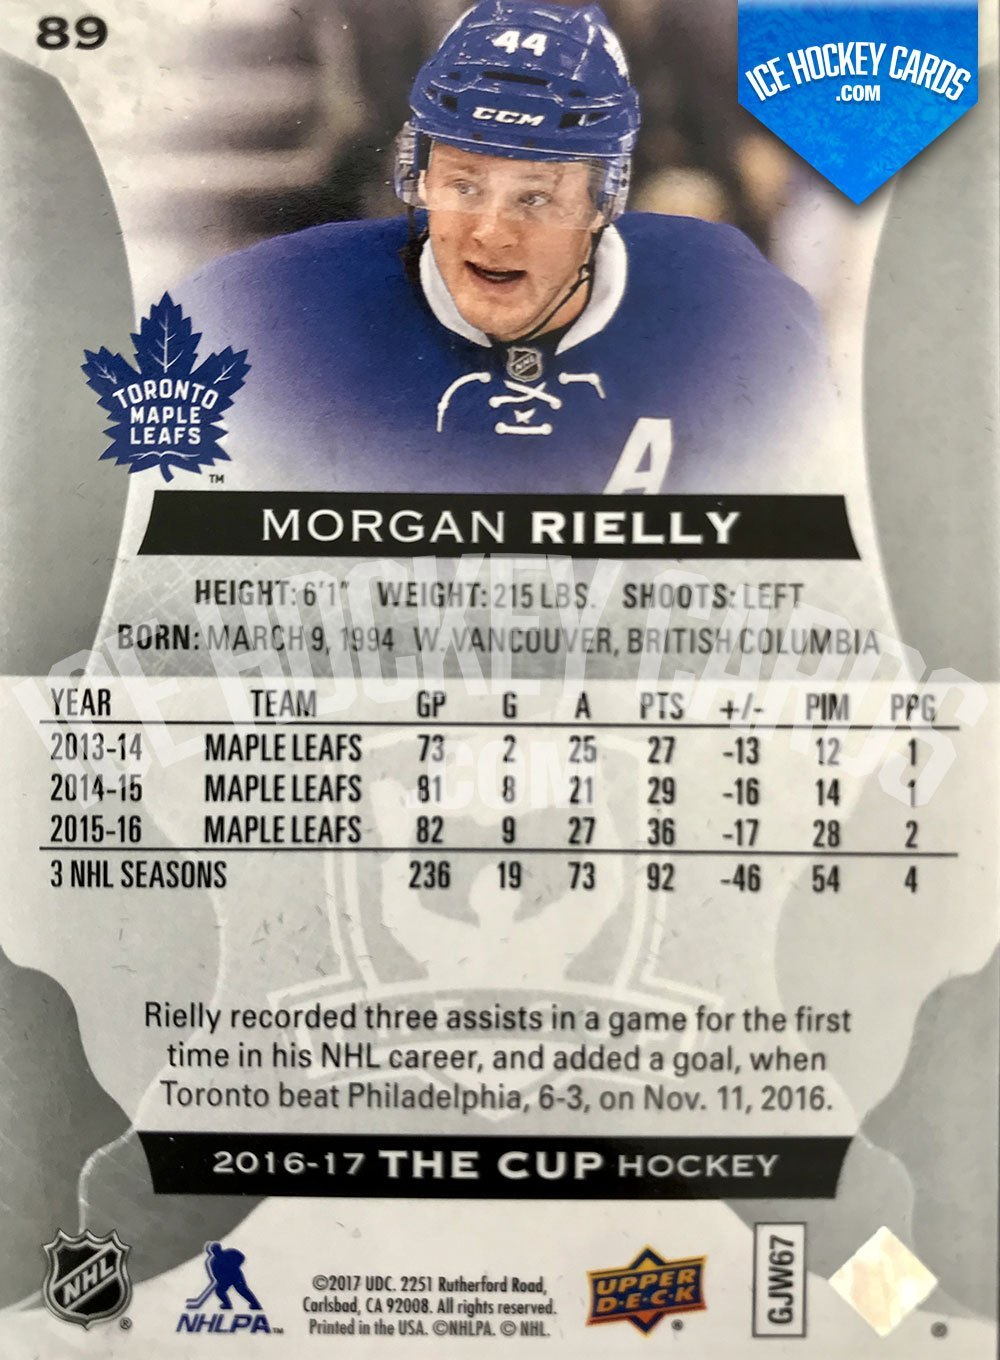 Upper Deck - The Cup 2016-17 - Morgan Rielly Base Card back